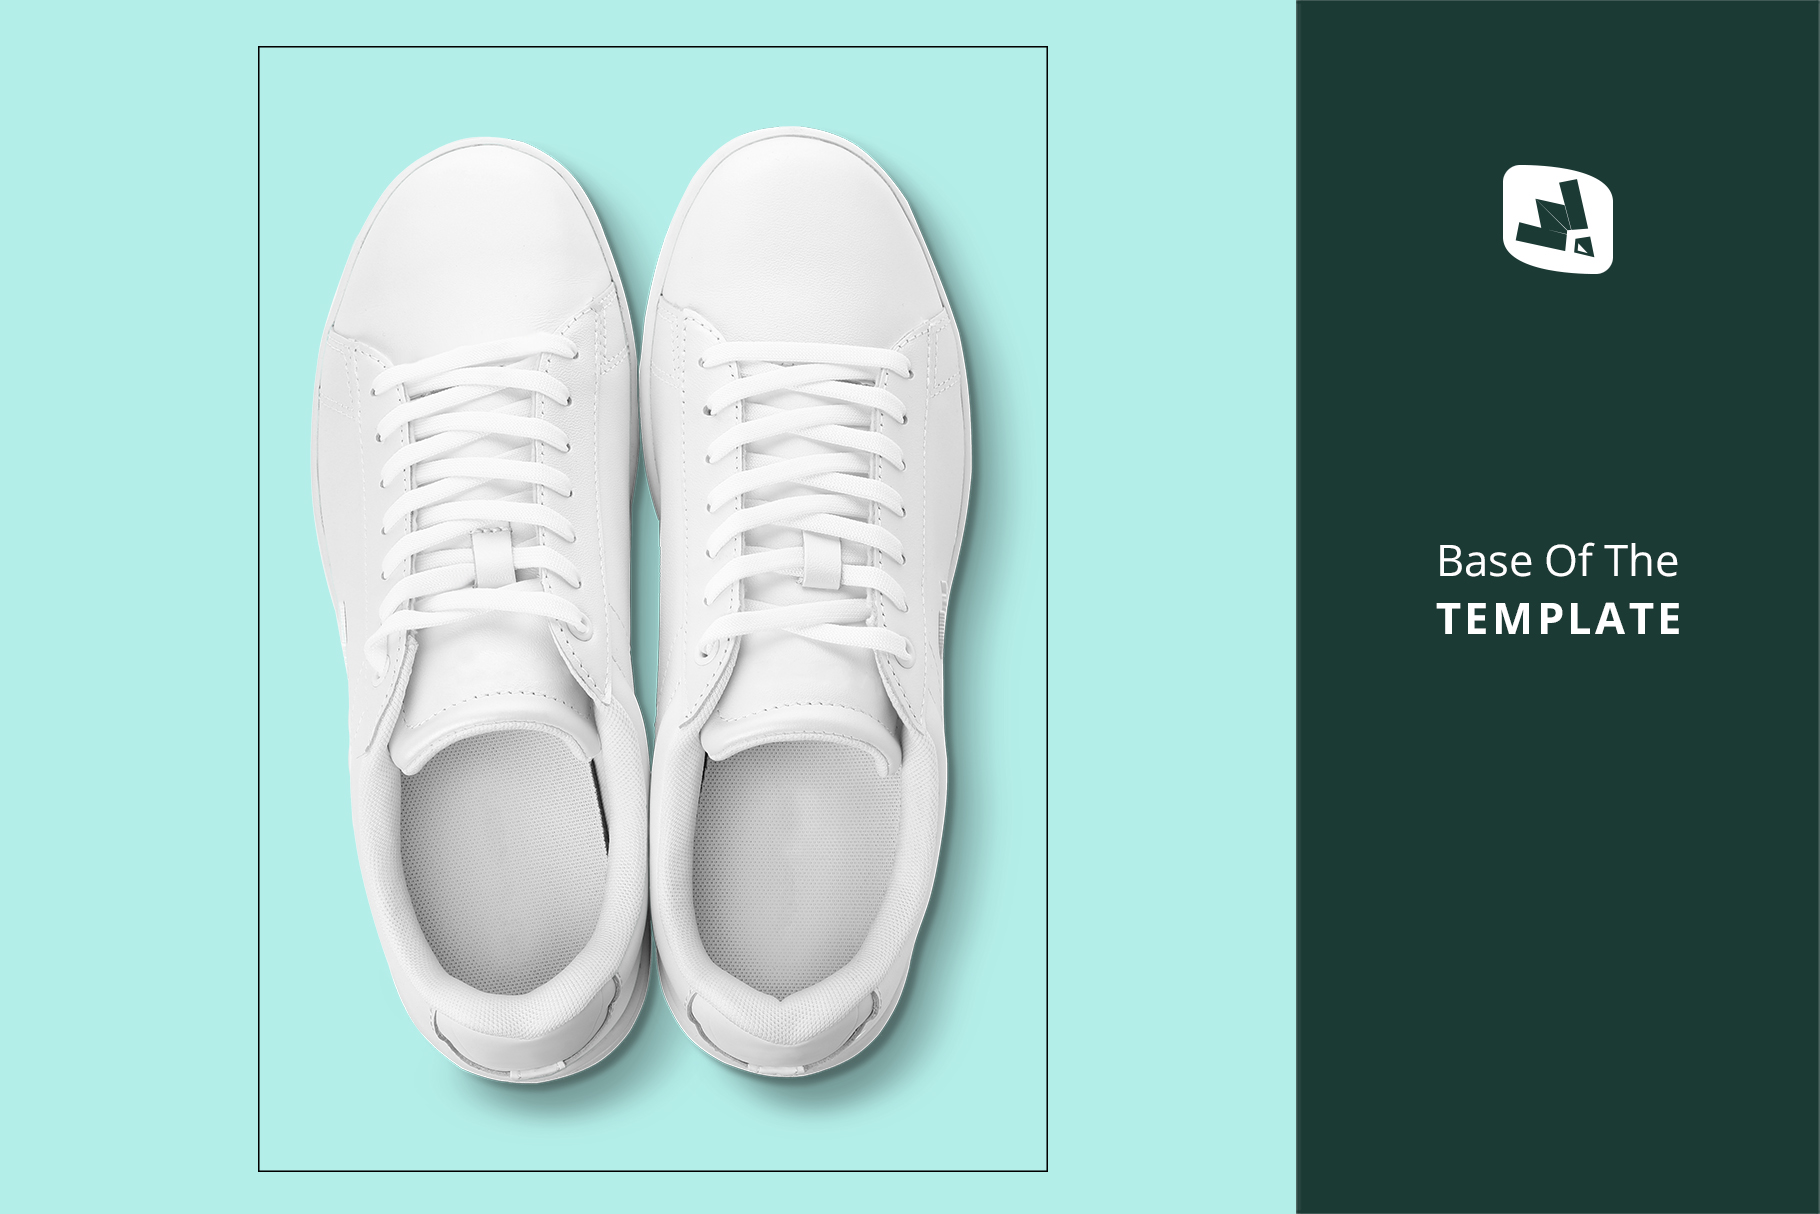 base image of the top view trendy sneakers mockup